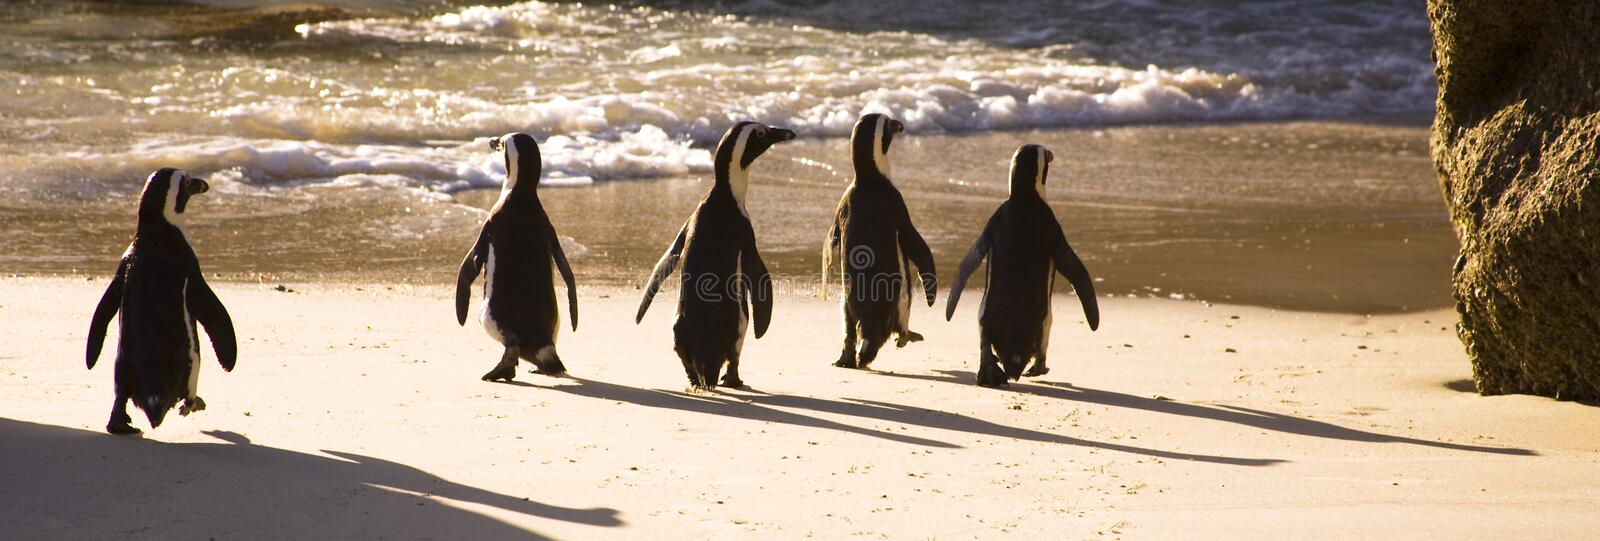 Cape Town - pingouins africains photographie stock libre de droits